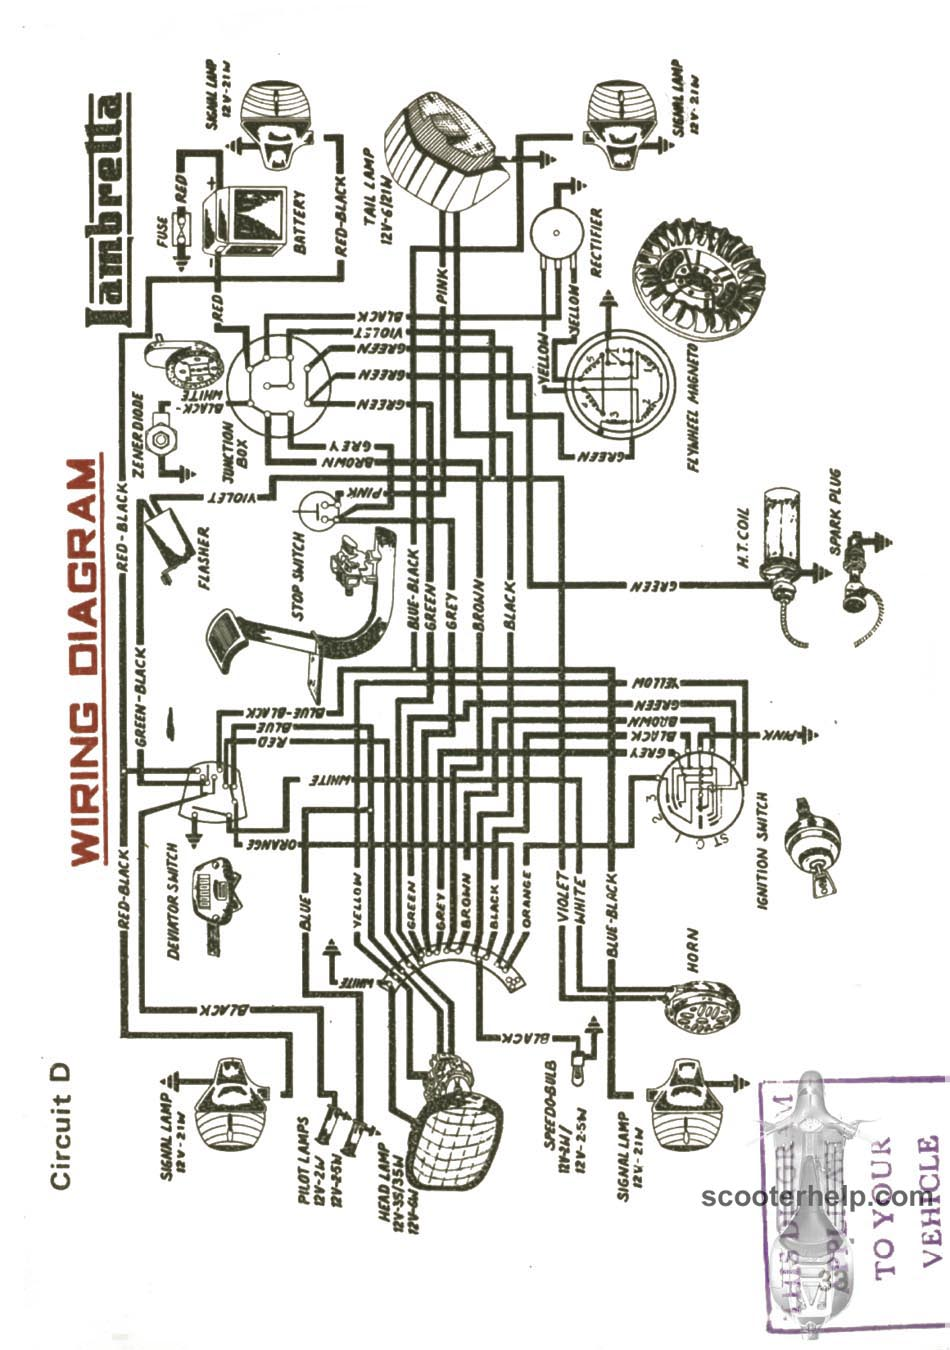 page33 sil lambretta dl 200 owner's manual lambretta 12v wiring diagram at bakdesigns.co